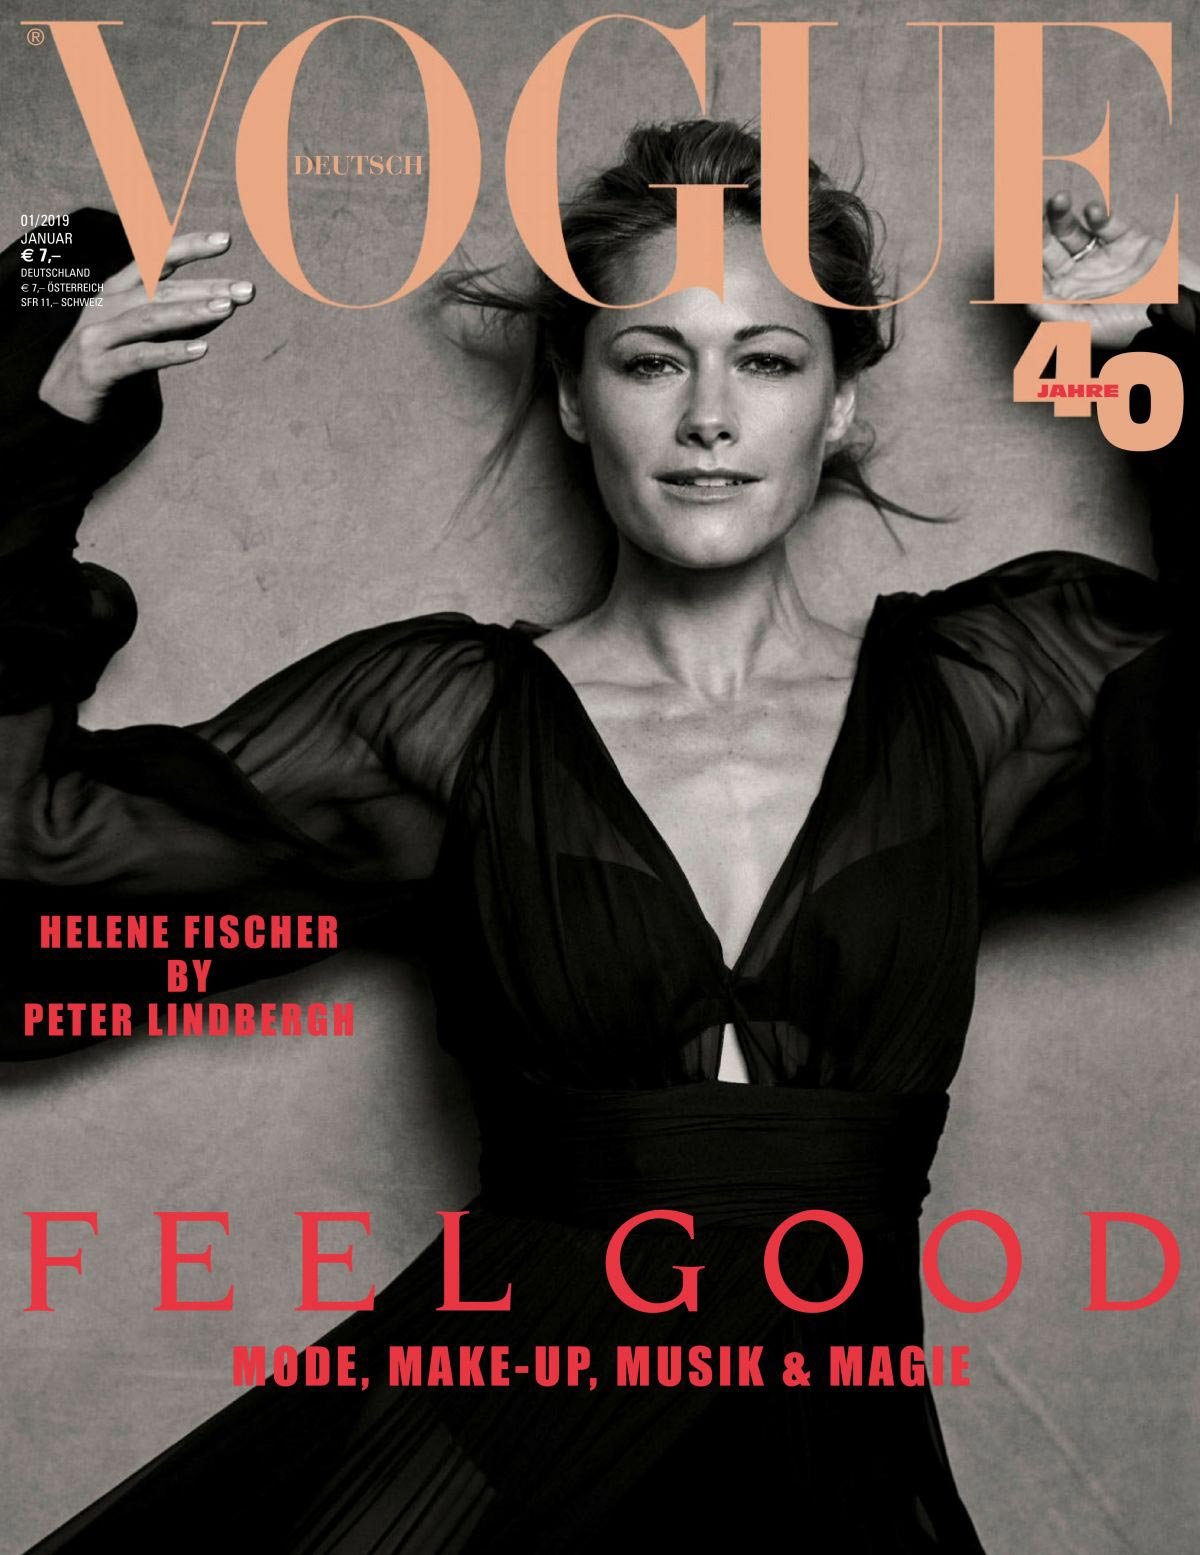 Vogue The Top Selling Fashion Magazine: Helene Fischer In Vogue Magazine, Germany January 2019